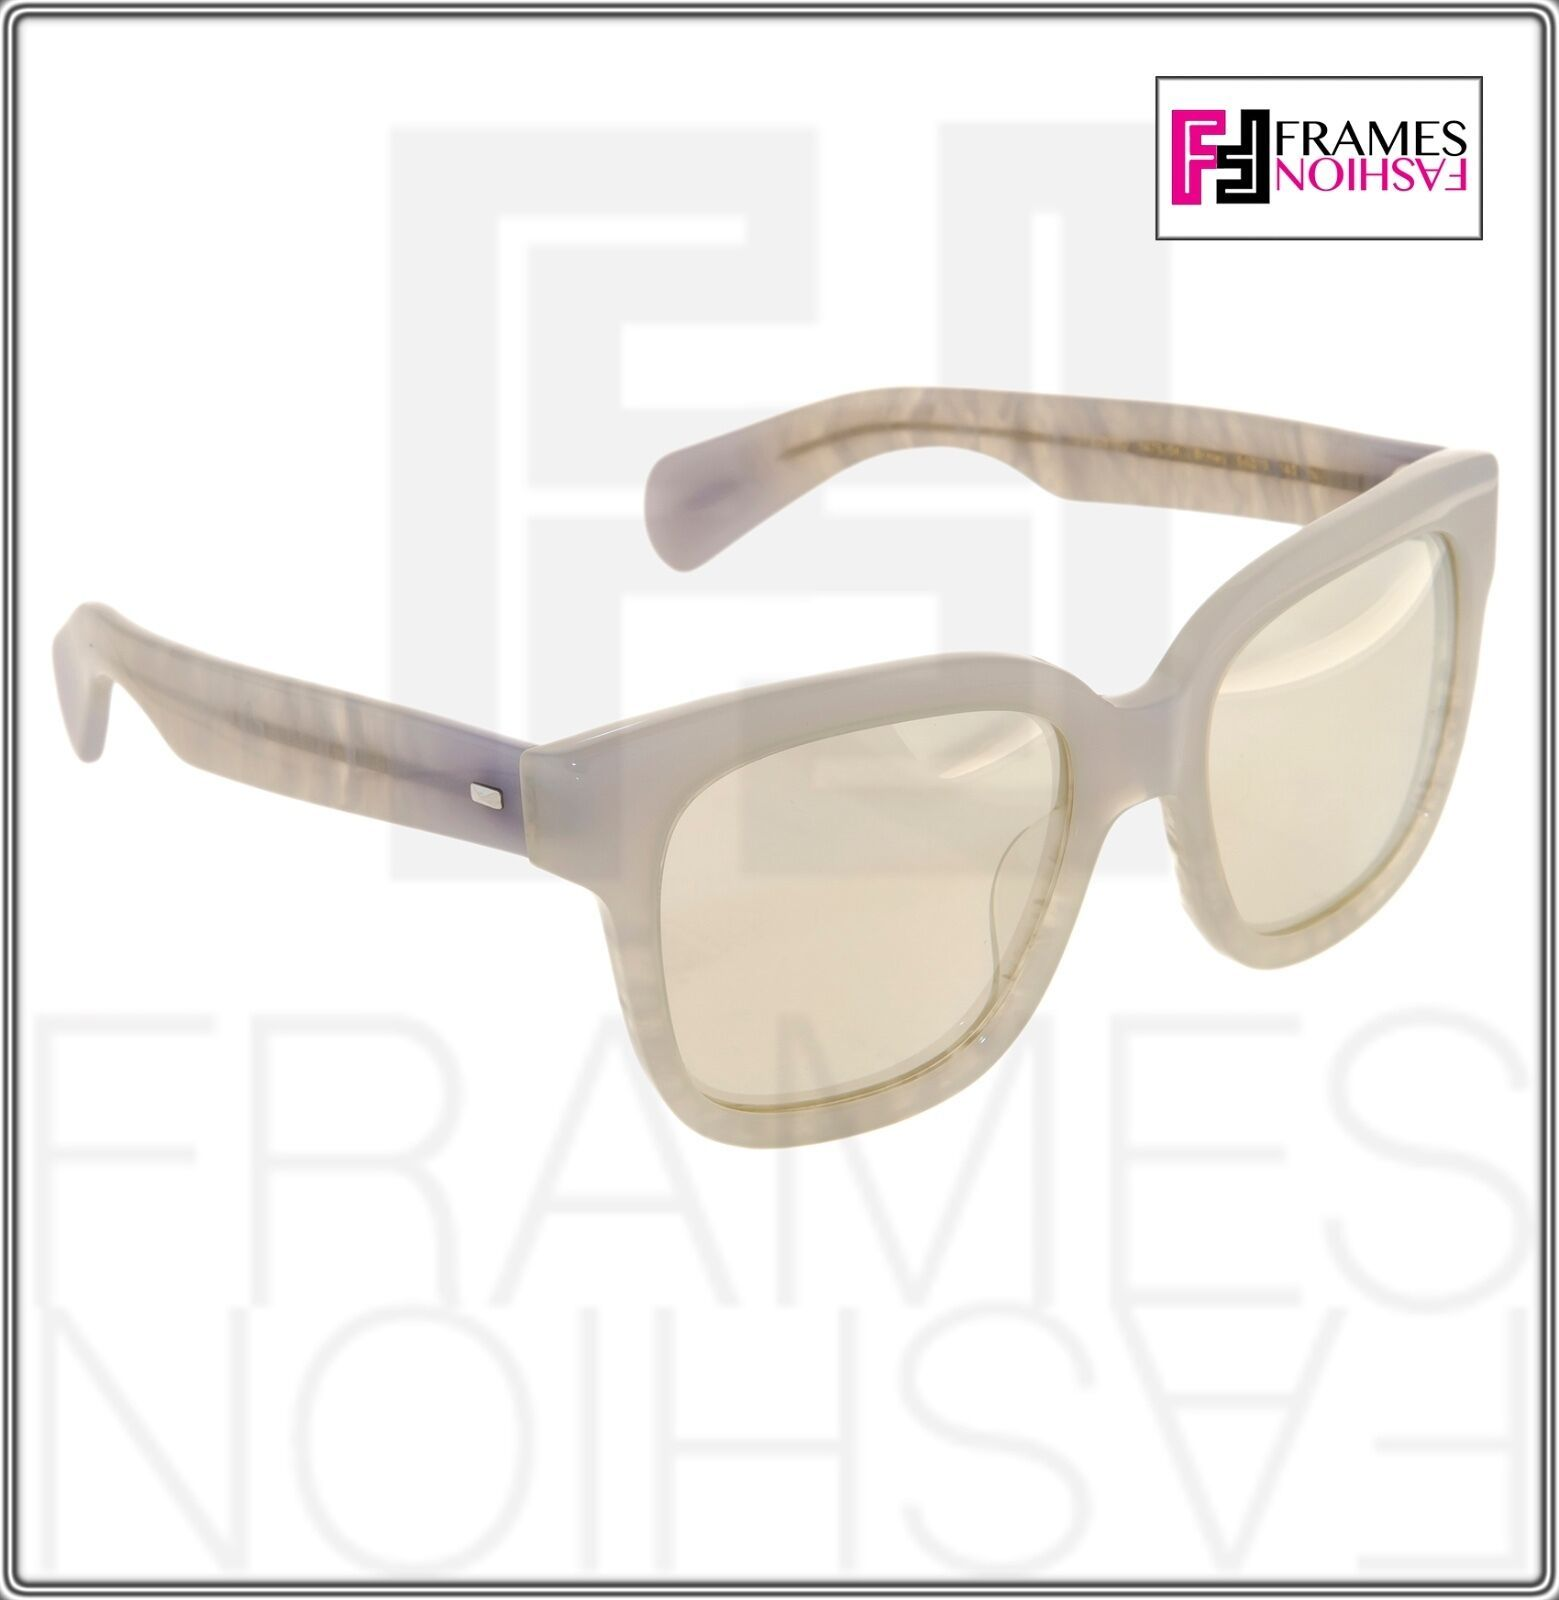 OLIVER PEOPLES Brinley OV5281SU Opal Pearl Gold Mirrored Sunglasses 5281 image 6